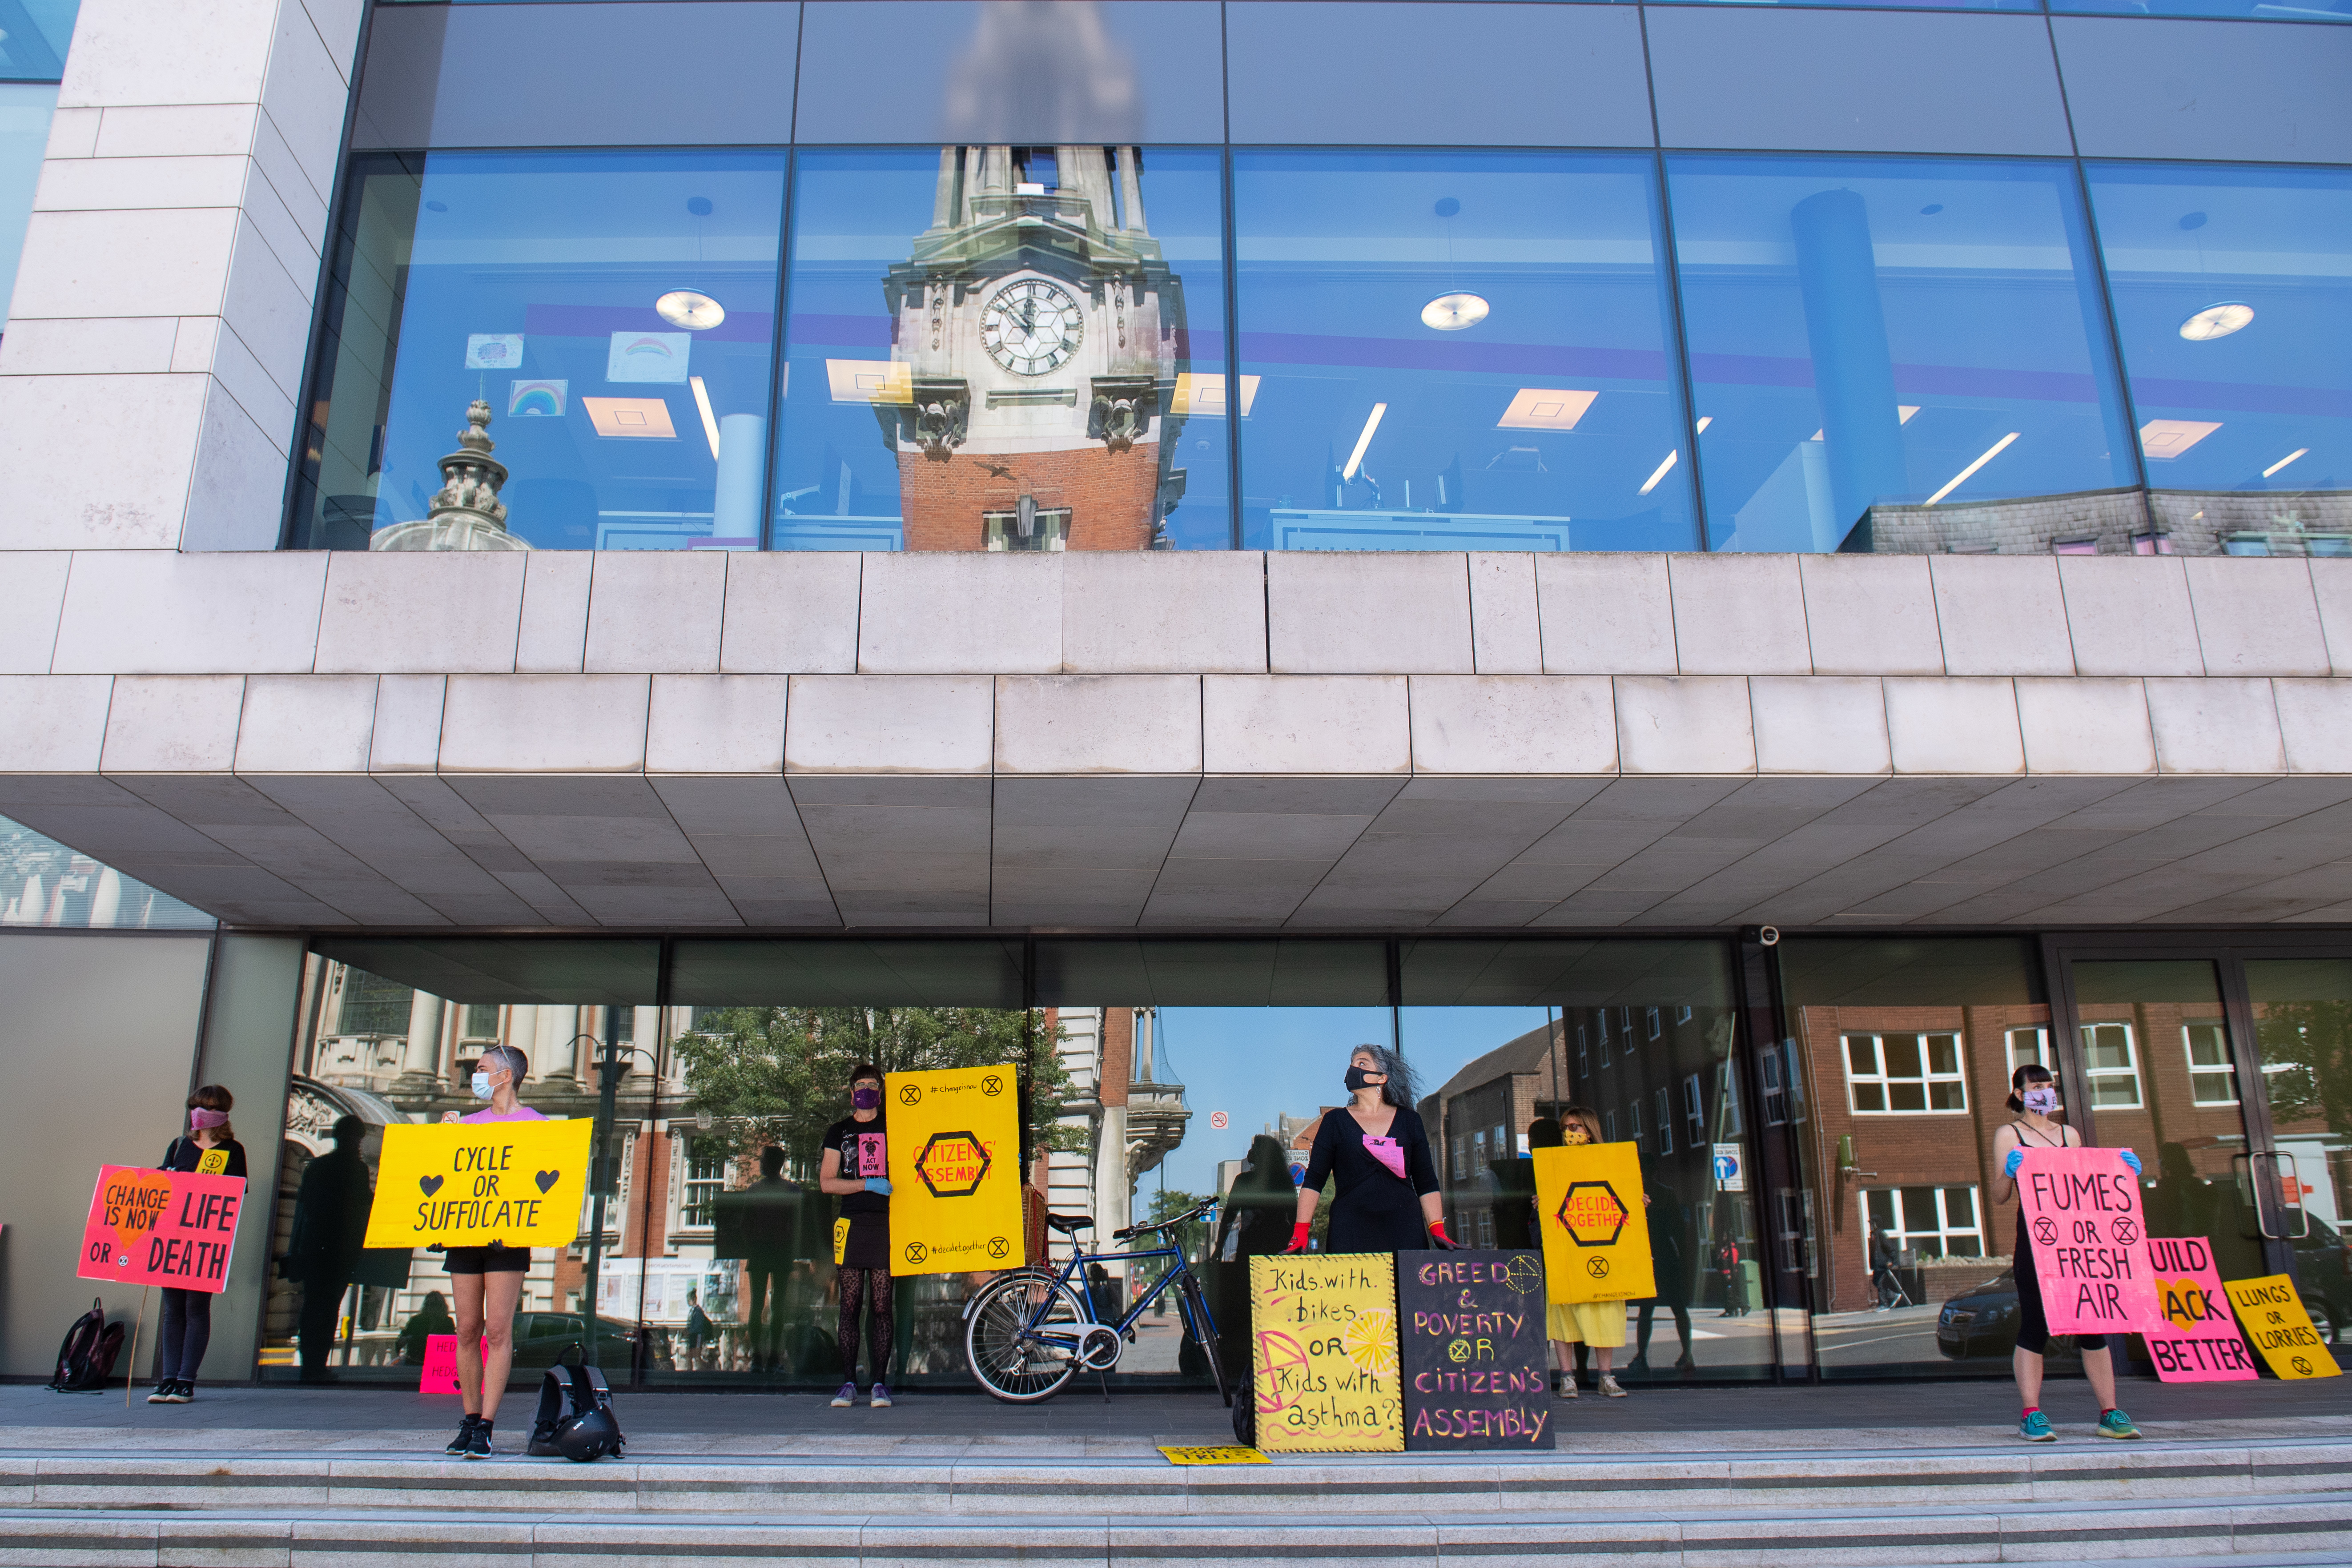 Extinction Rebellion activists stage a socially distanced protest outside the Woolwich Centre, in south London, calling on the council to better respond to Covid-19 and climate change.